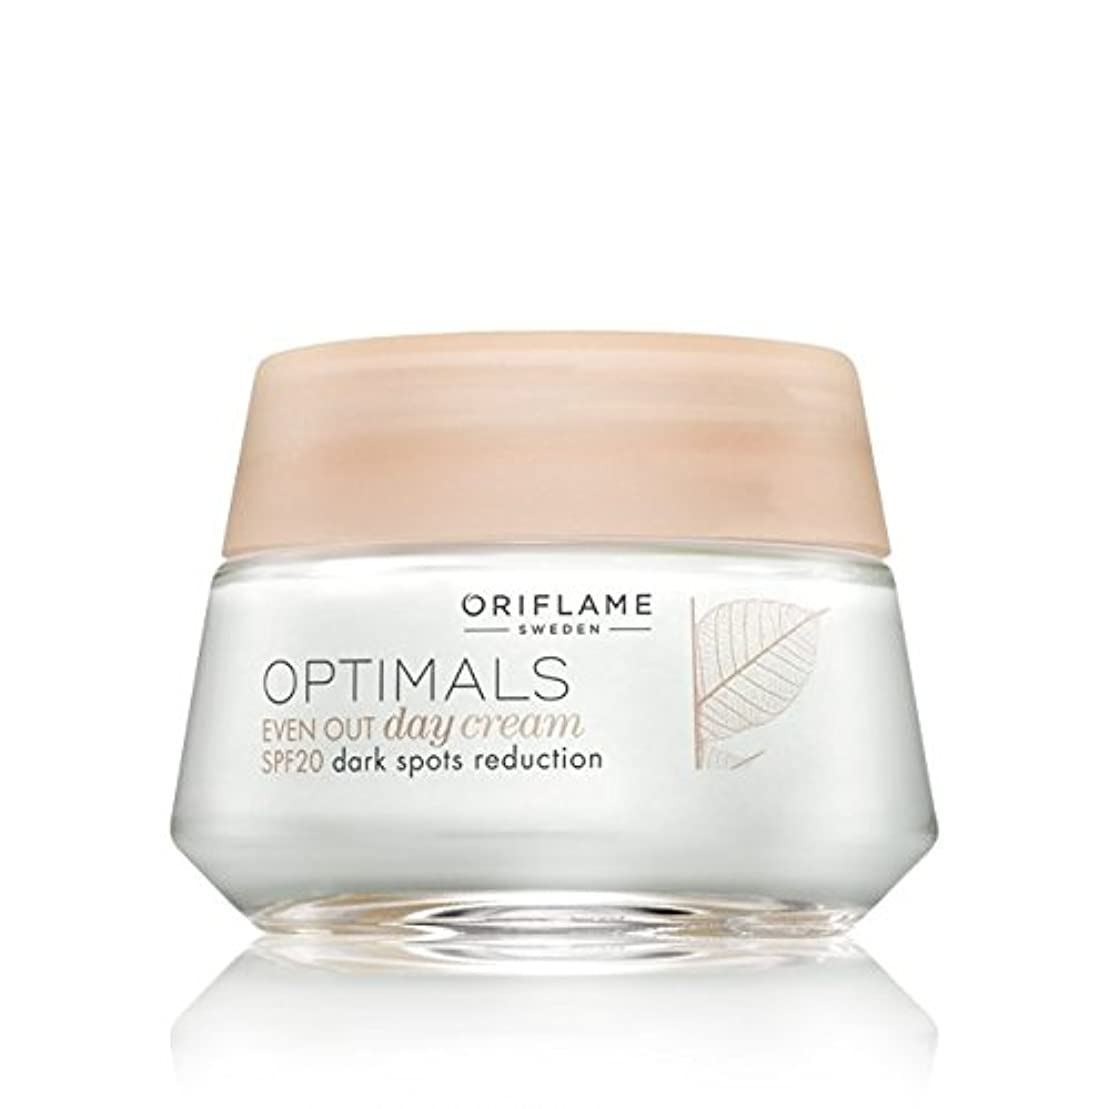 冷ややかな容器小説家Oriflame Optimals SPF 20 Dark Spot Reduction Even Out Day Cream, 50ml